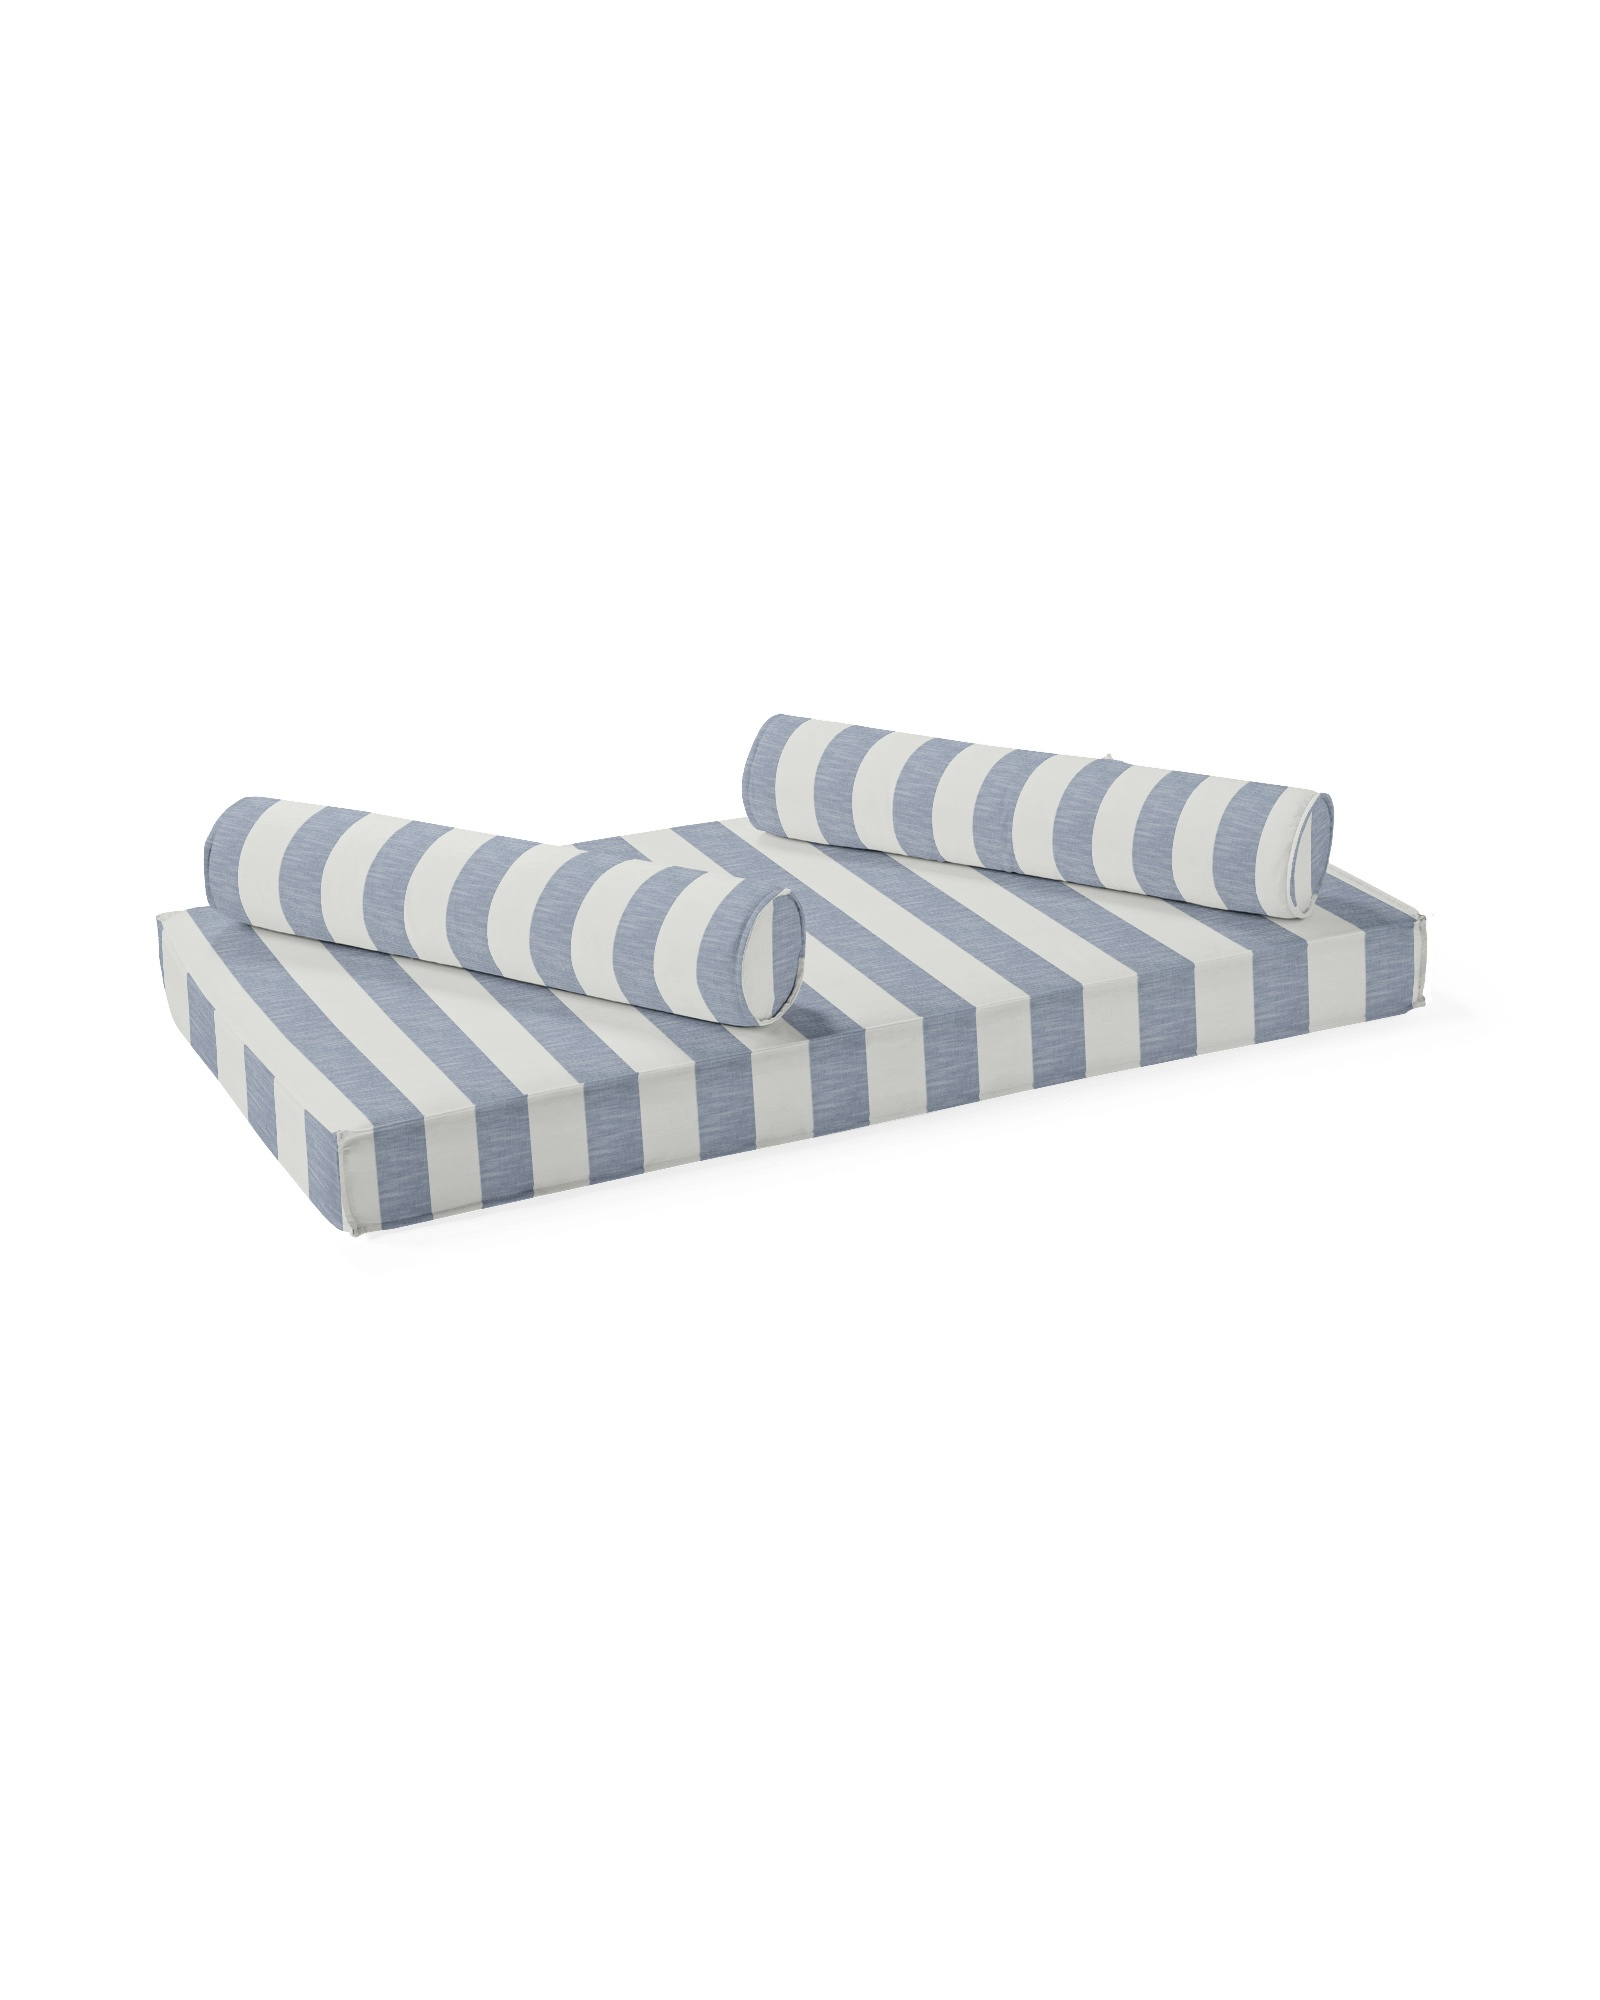 Daybed Mattress & Bolsters, Beach Stripe Navy